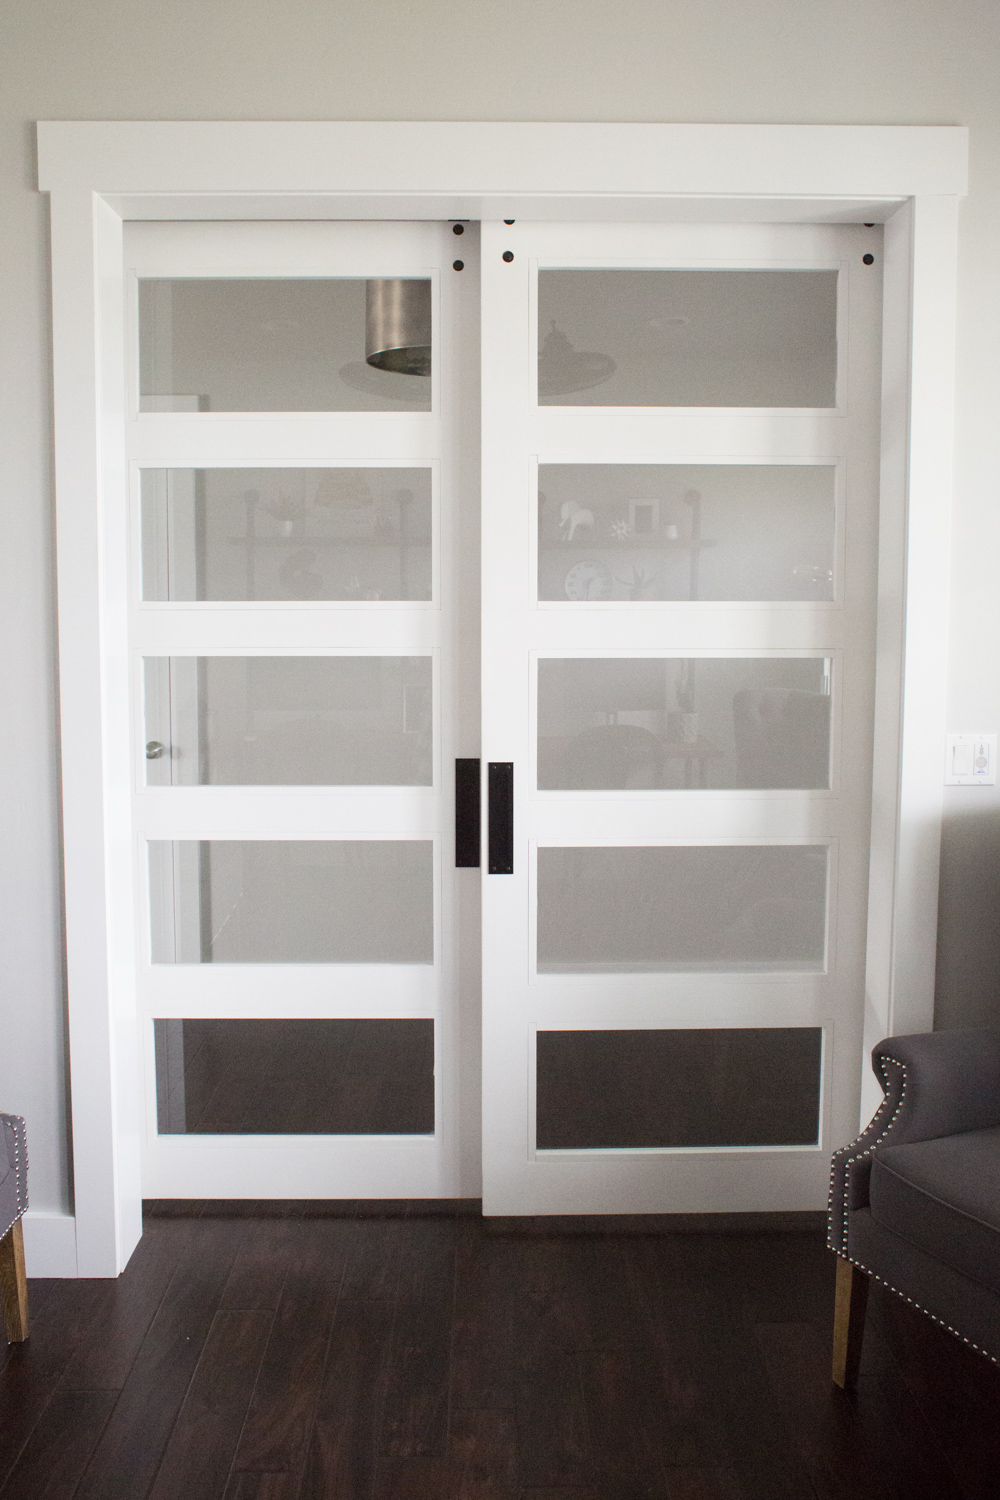 Rustica Hardware Australia: Our New Barn Doors With Rustica Hardware